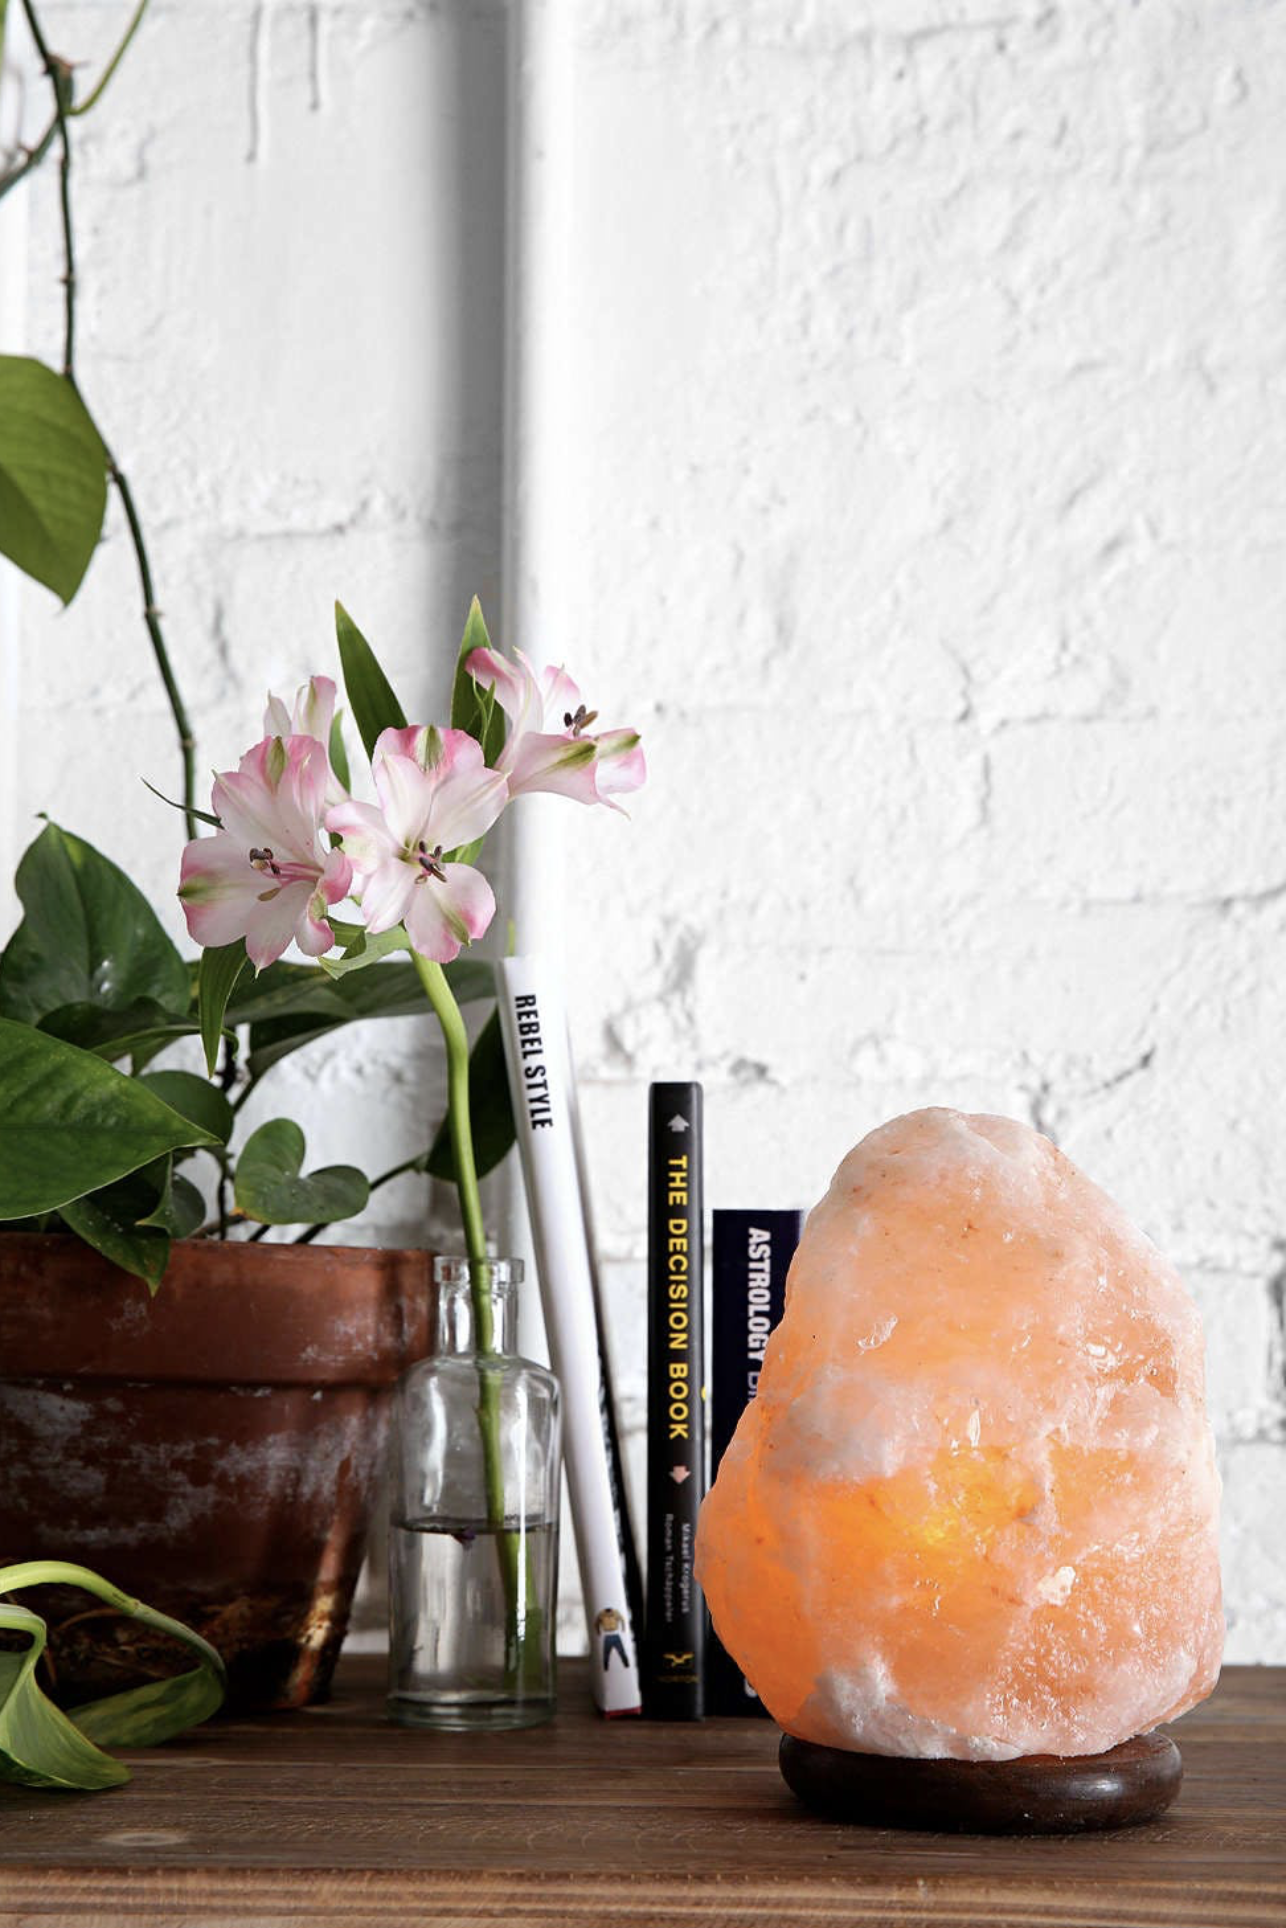 Himalayan Salt lamps - Himalayan Salt Lamps are so hot right now and another one of my favourite ways to lift the energy in a space. These beautiful lamps are able to purify and clean the air in a space by absorbing water in the air + trapping dust, pollen + pollutants. Not only can they cleanse the air and improve breathing capabilities but they remove odours too! Now my favourite thing that salt lamps do is they literally increase our energy levels! Yes, you heard right and don't we need it! Salt lamps are said to combat the positive ions that exist in our air. These positive ions really should be called negative ions ;) as they reduce the flow of blood around the body which drains our energy. But in actual fact, it is the beautiful salt lamp that produces the negative ions that are so super beneficial, and they also help neutralise the electromagnetic radiation produced by household appliances. Electromagnetics are known to cause fatigue and interfere with our natural healthy rhythms and cycles affecting sleep and concentration. There is so much exciting information available on the benefits of salt lamps, for more info head to http://negativeionizers.net/negative-ions-benefits/ .